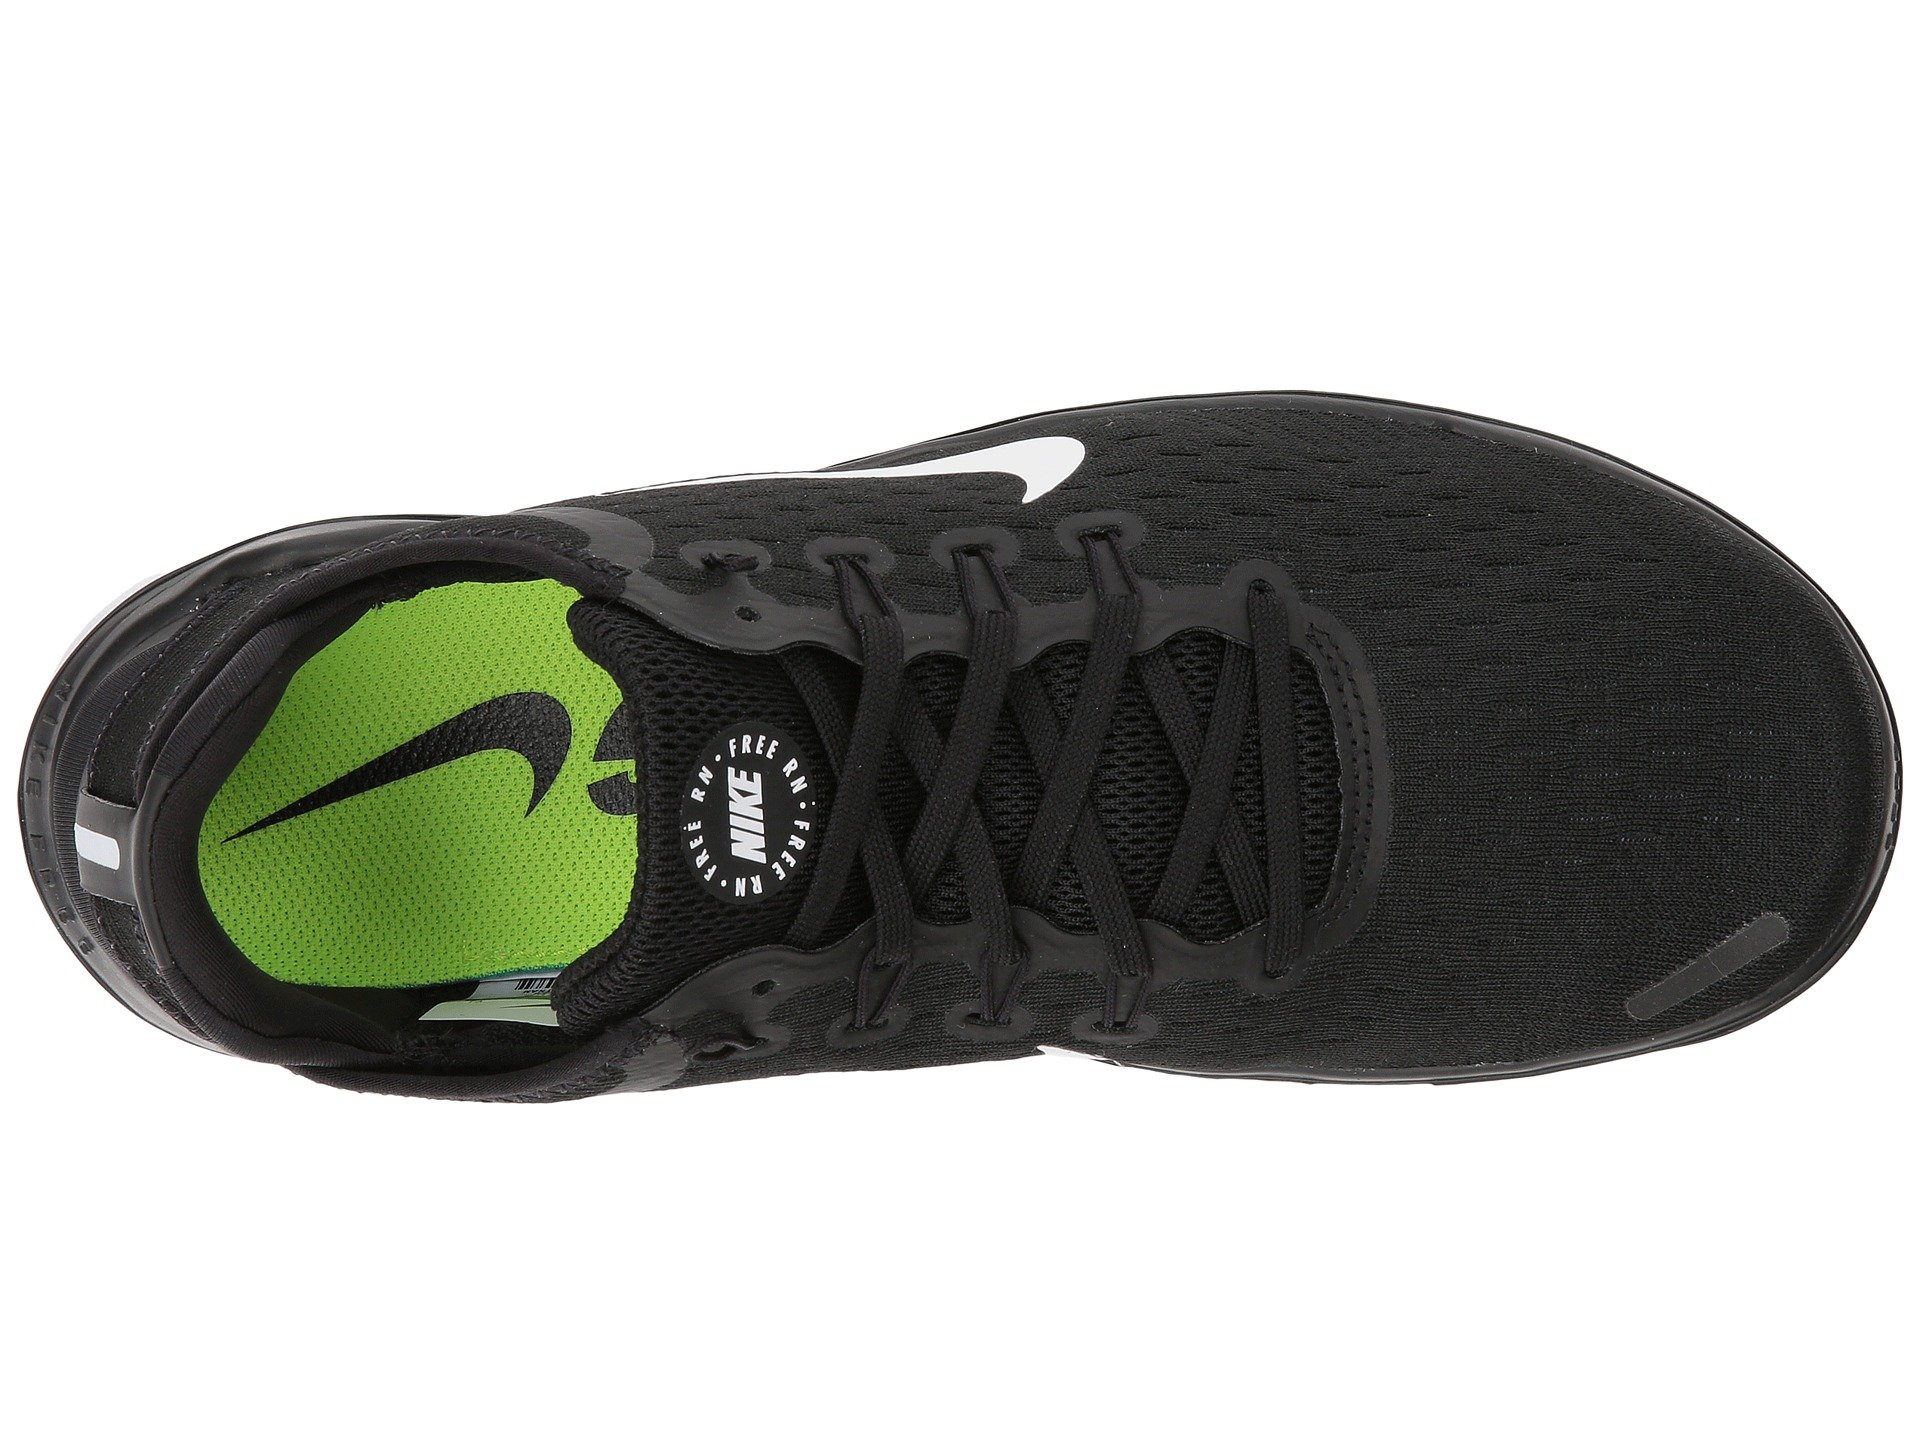 official photos 74232 f0f97 Cheap nike basketball shoes on sale. See more special. Clearance women's nike  shoes are very popular in united states. Shop now save big. Nike : women's  air ...